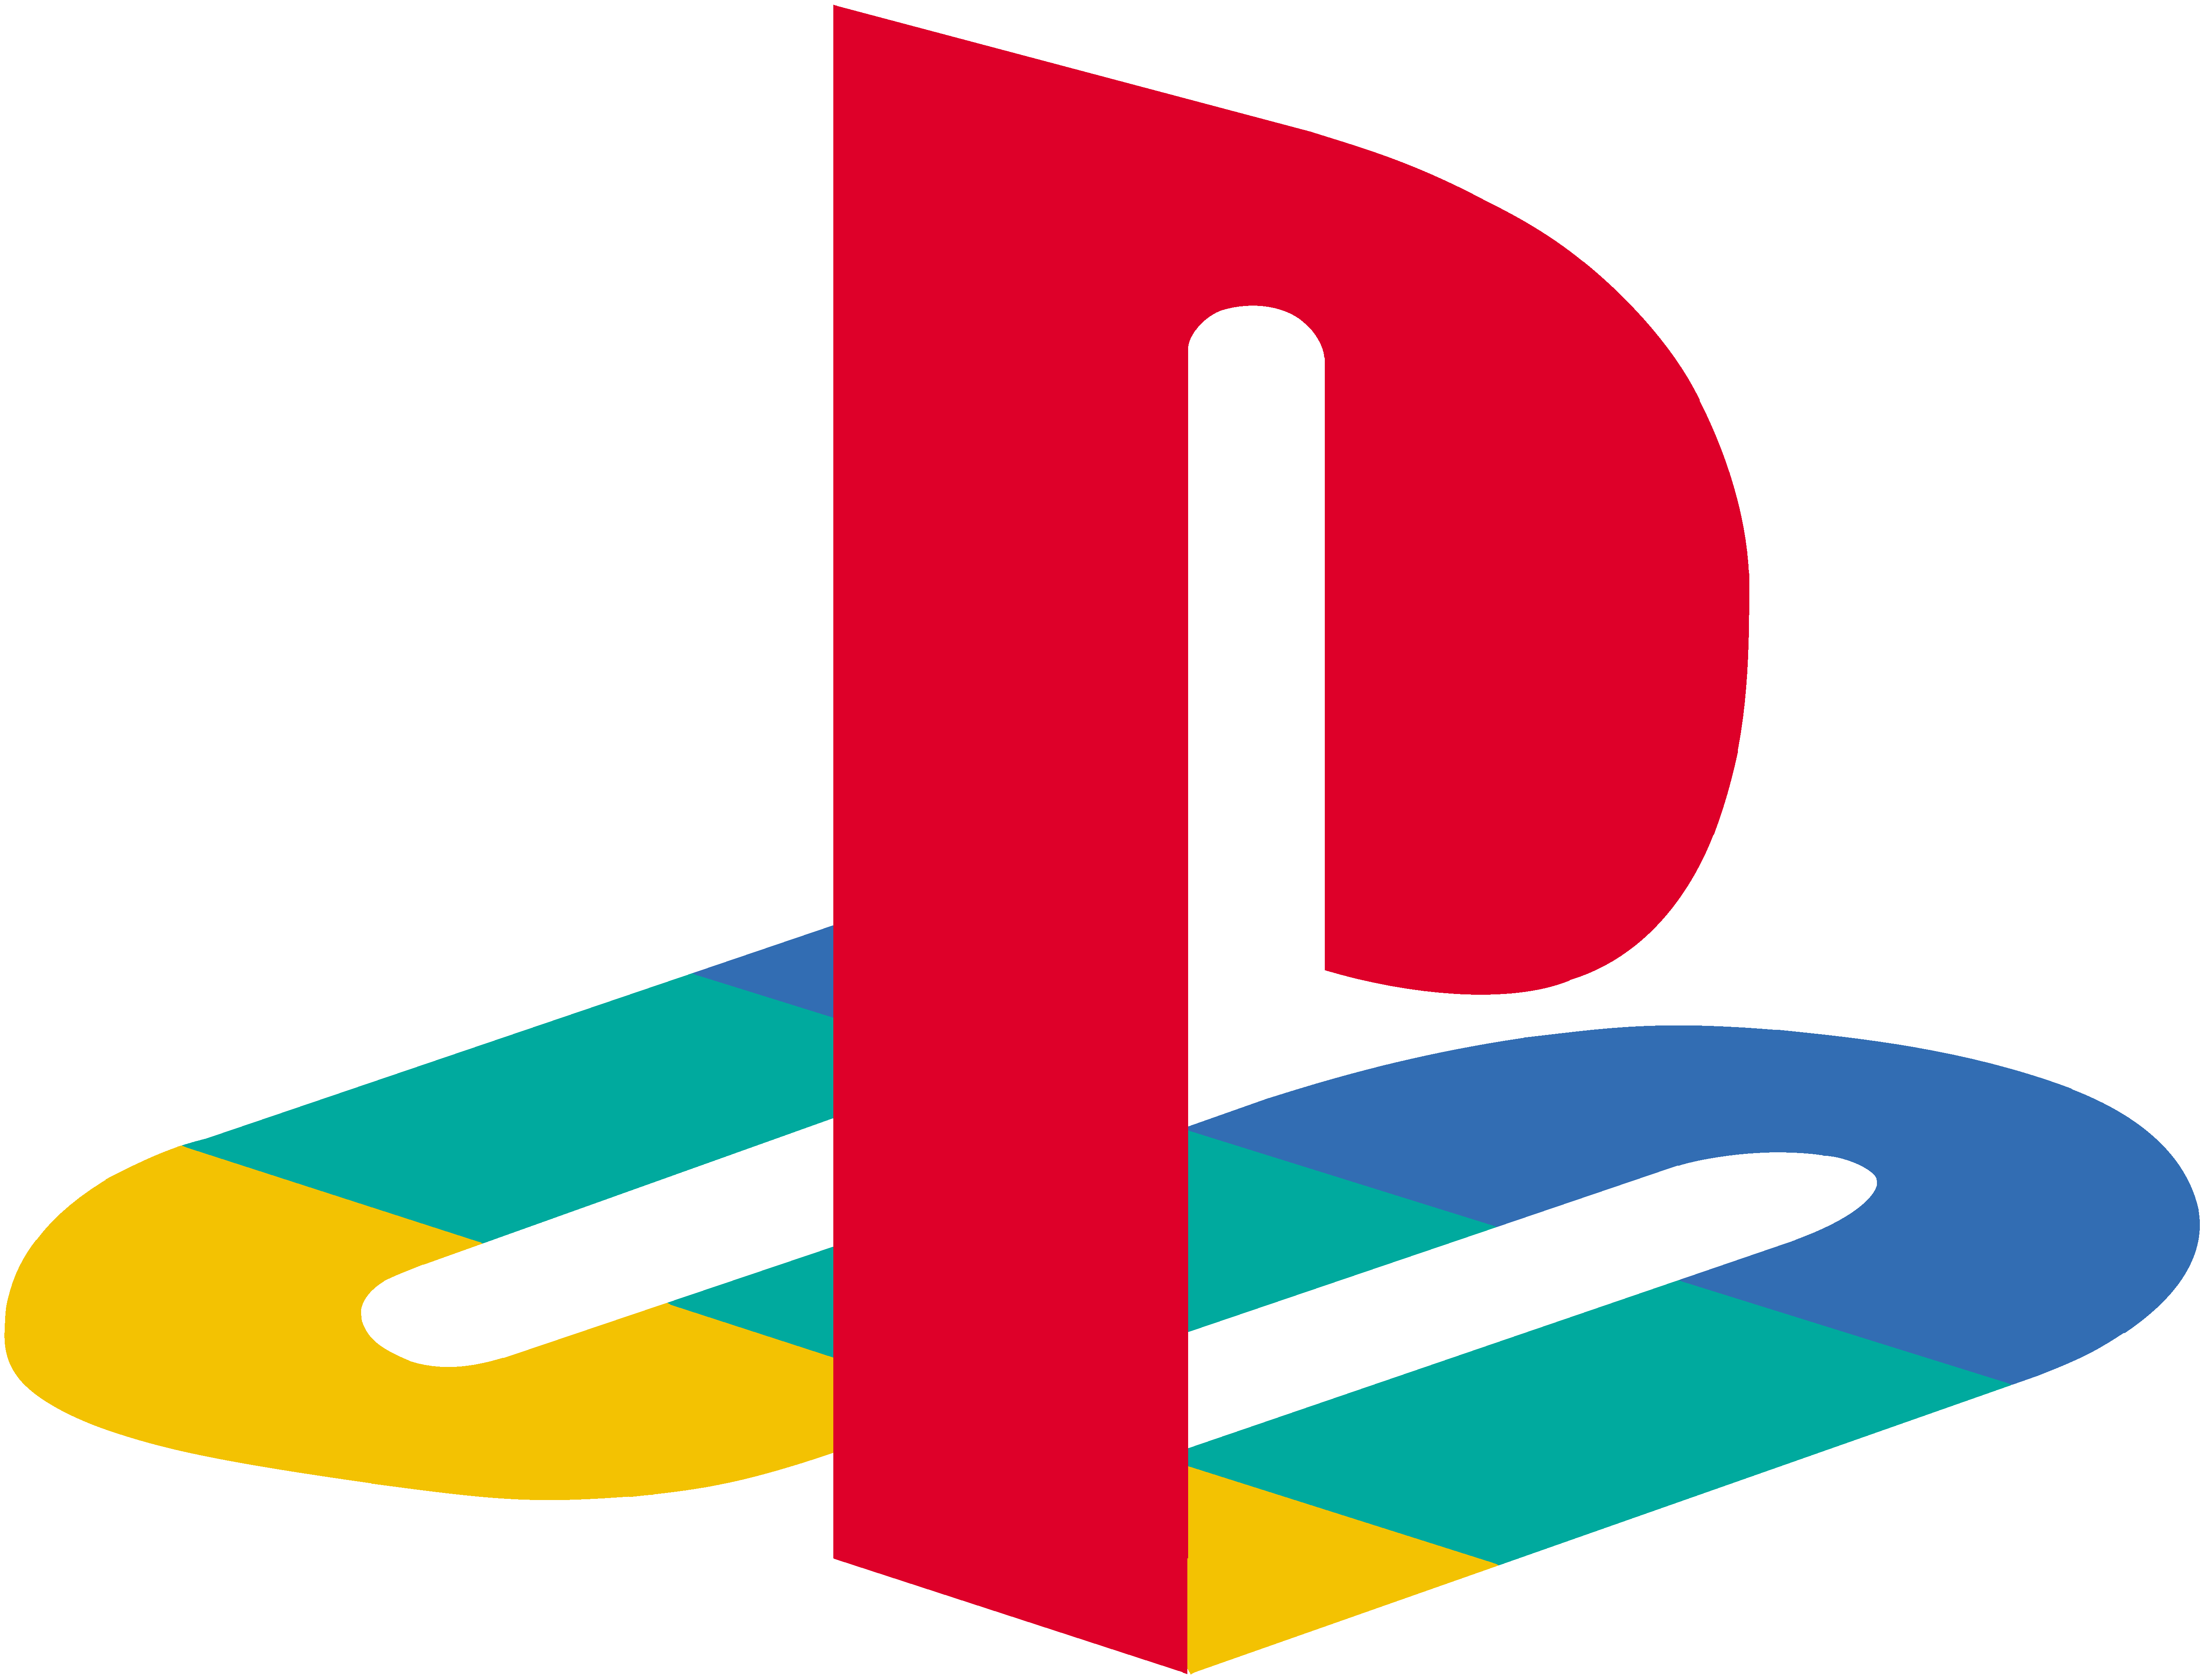 playstation 2 logo clip art related keywords playstation